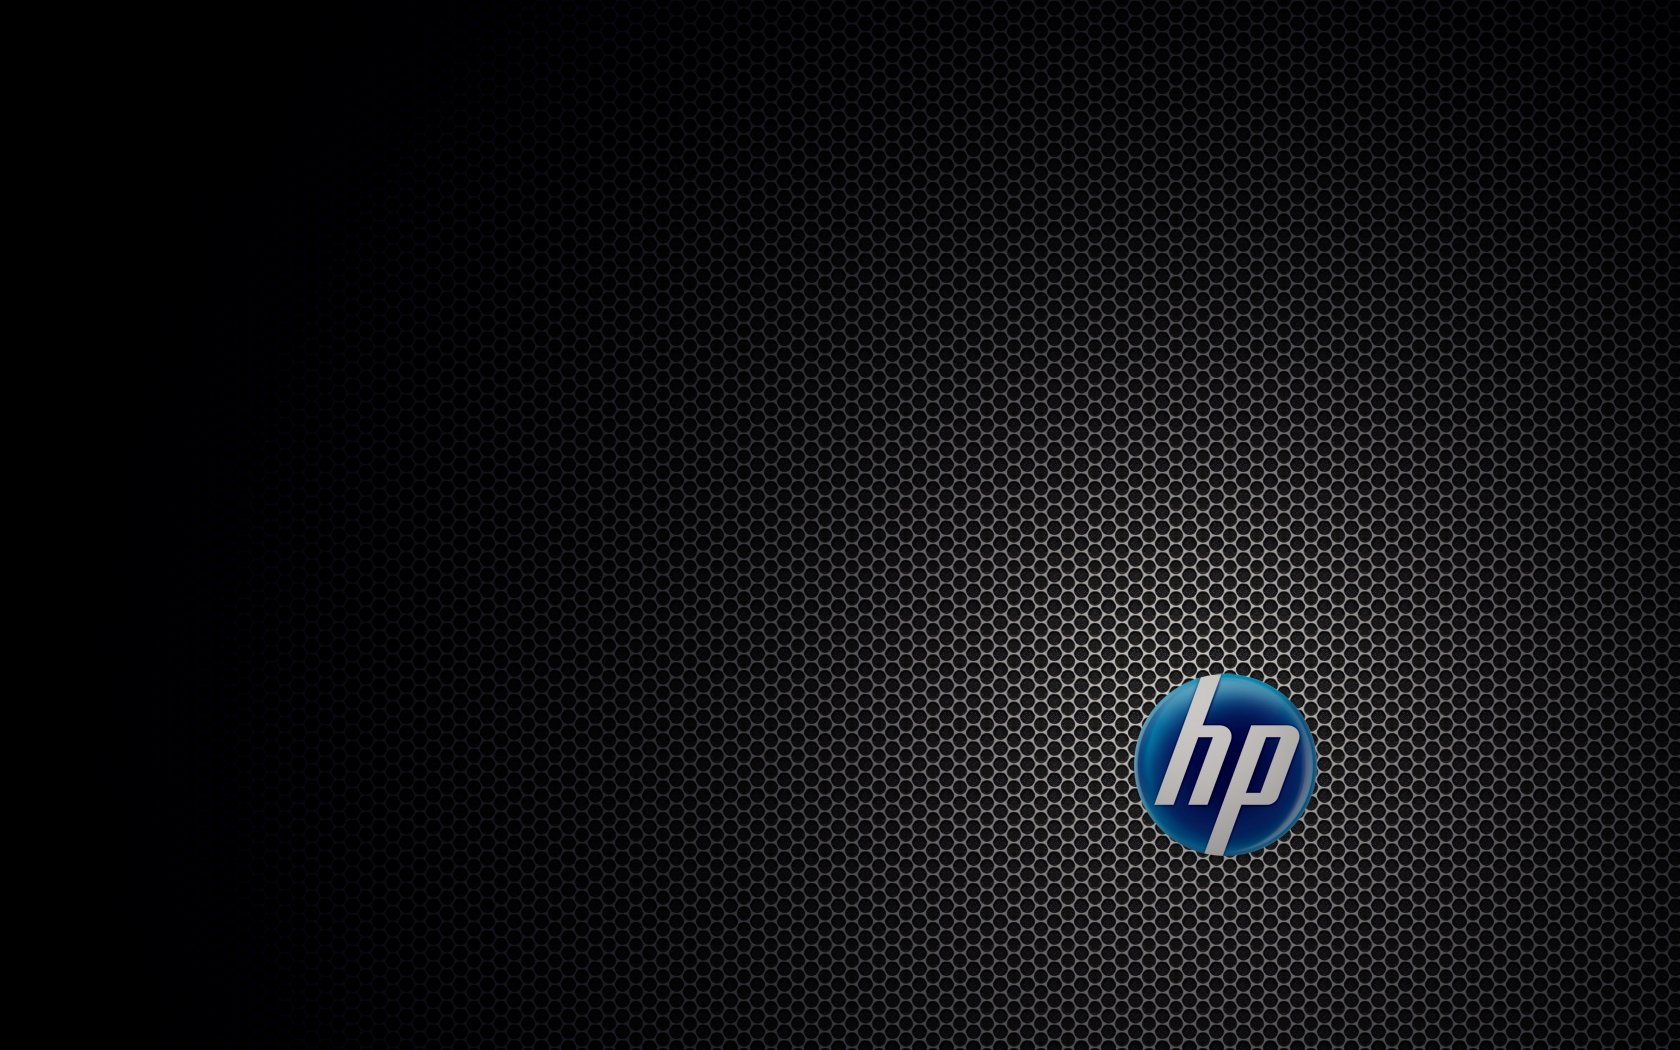 41 Hp 4k Wallpaper On Wallpapersafari